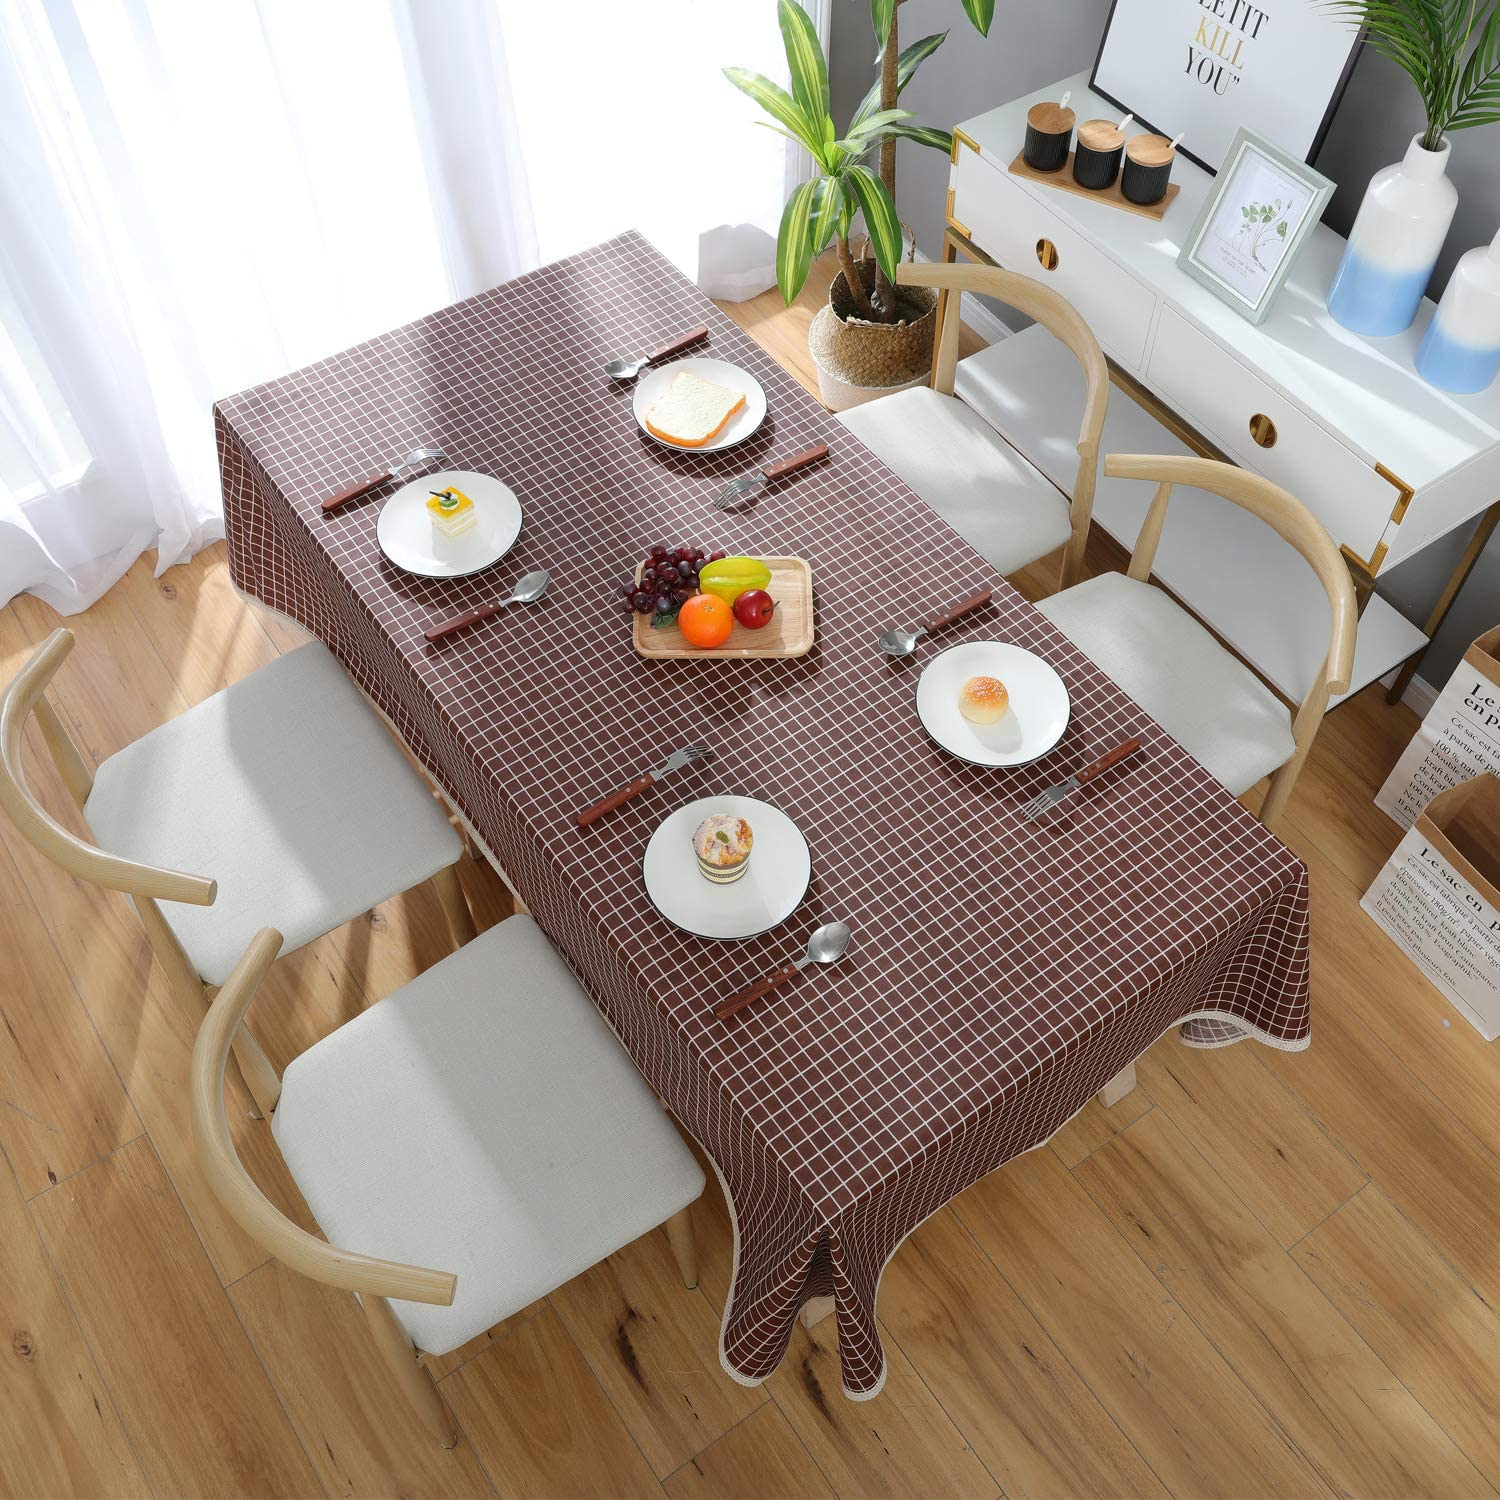 145x200cm, Coffee Checkered DARUITE PVC Table Cloth Rectangle Table Cover Kitchen Tablecloth Heavy Weight Vinyl Wipe Clean Waterproof Oil-proof Stain-resistant